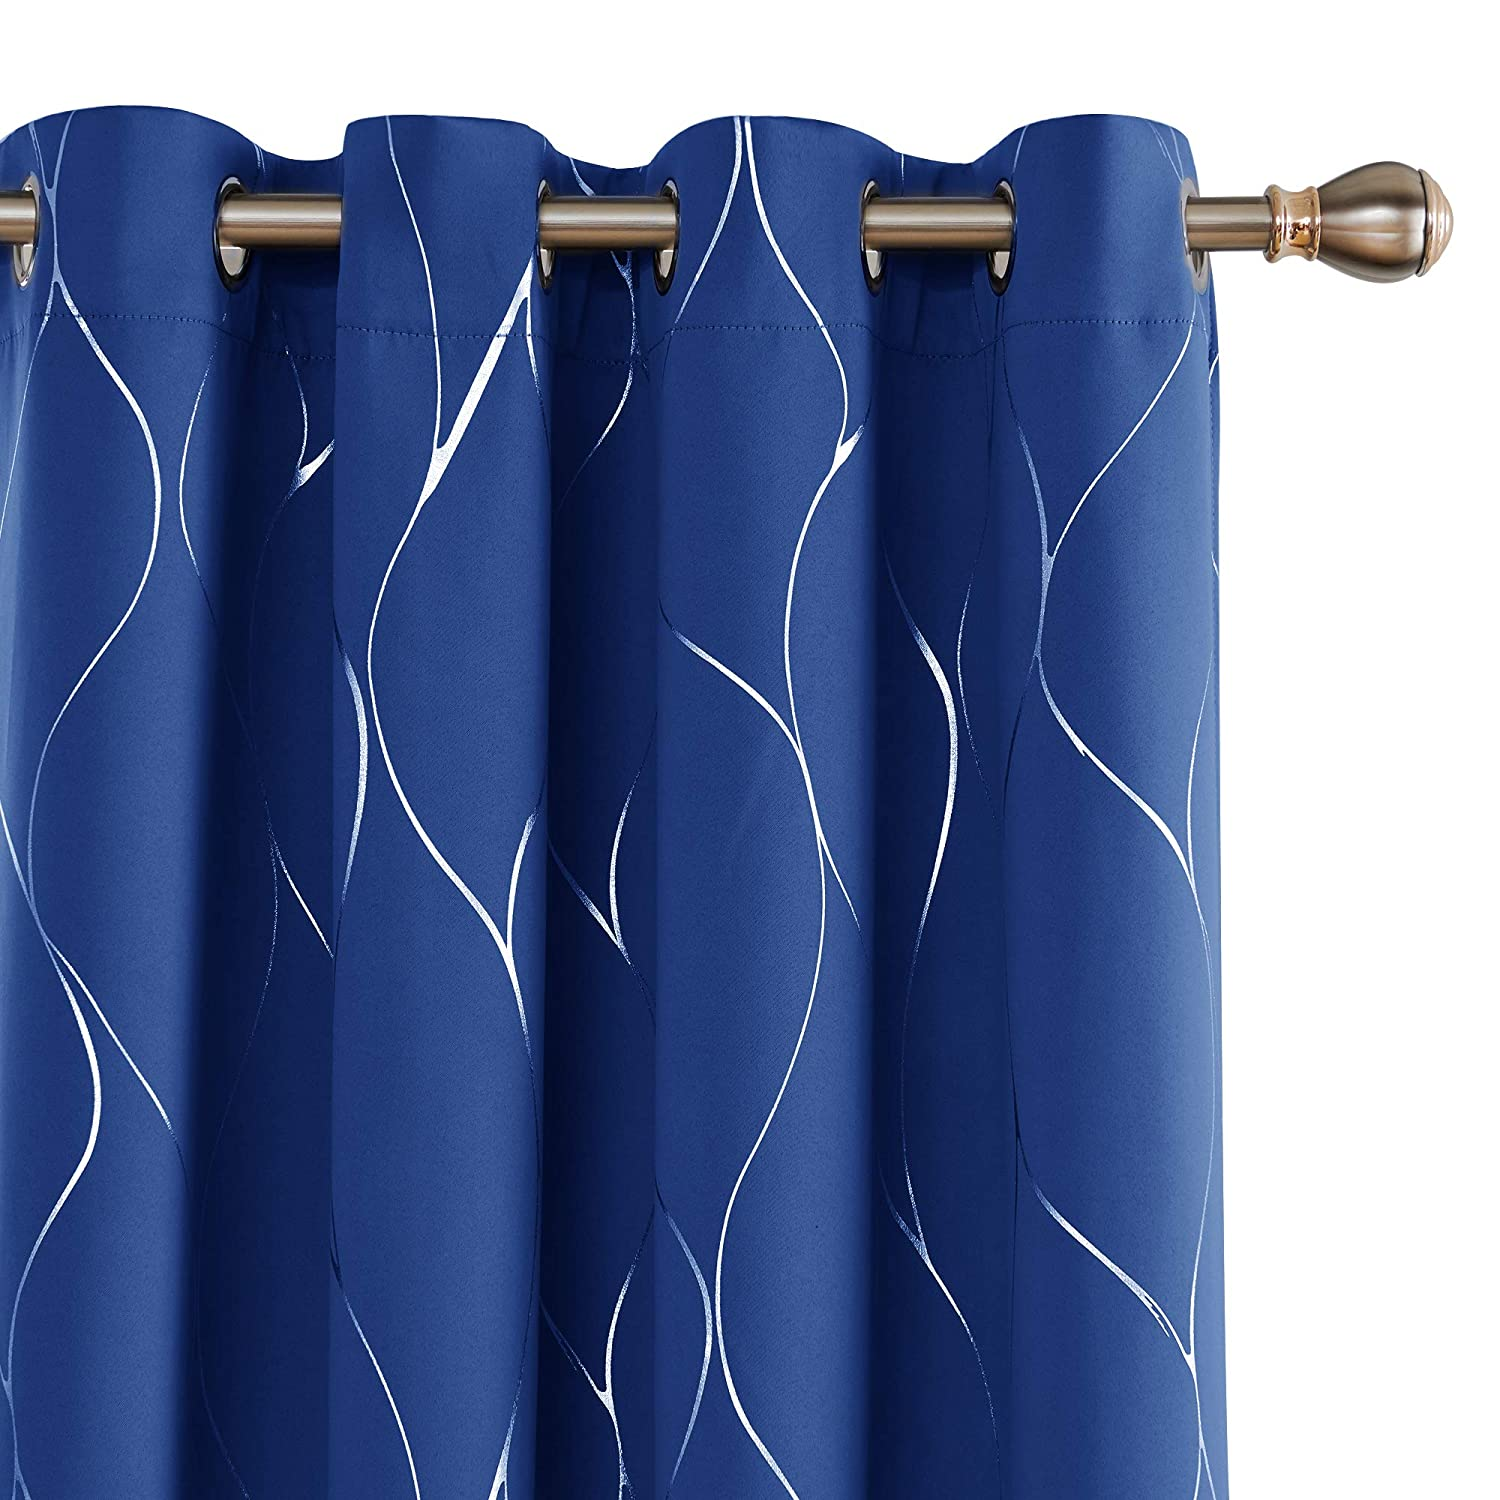 Deconovo Silver Wave Foil Print Blackout Curtains Grommet Room Darkening Curtain Noise Reducing Window Draperies for Living Room 52W x 84L Inch Set of 2 Panels Royal Blue